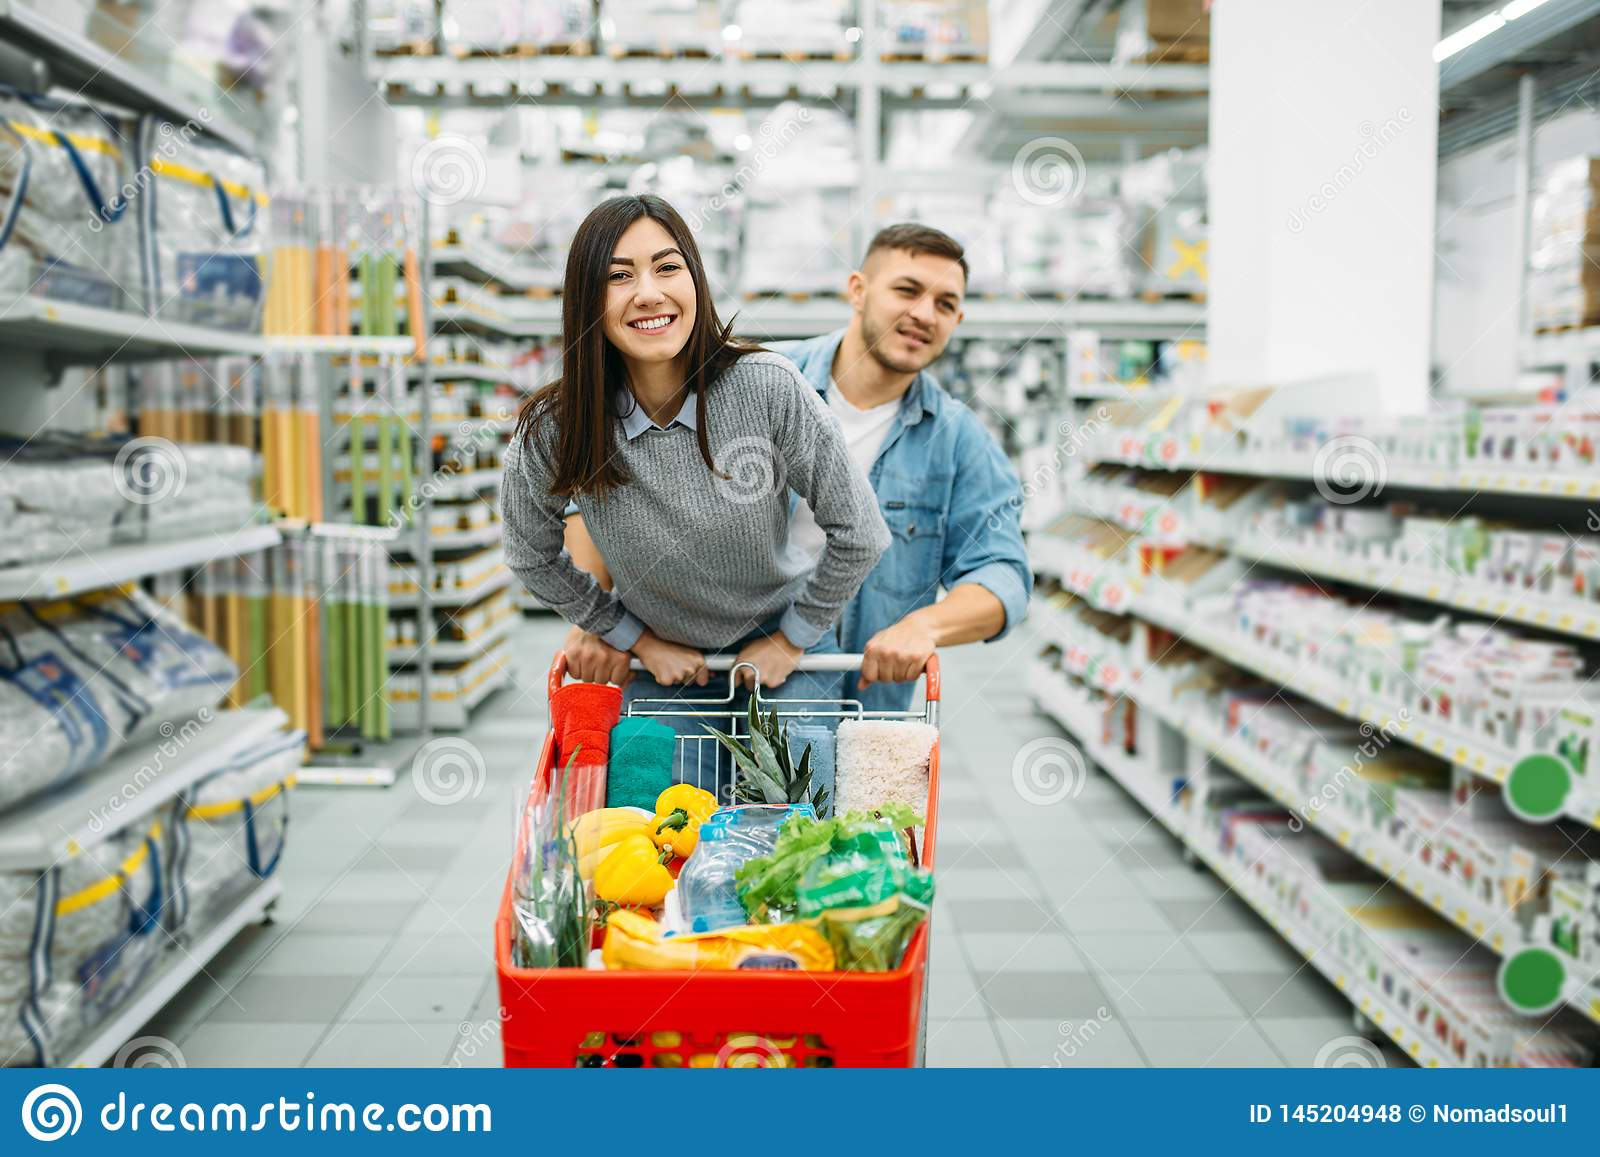 Couple With Cart Full Of Goods In A Supermarket Stock Photo